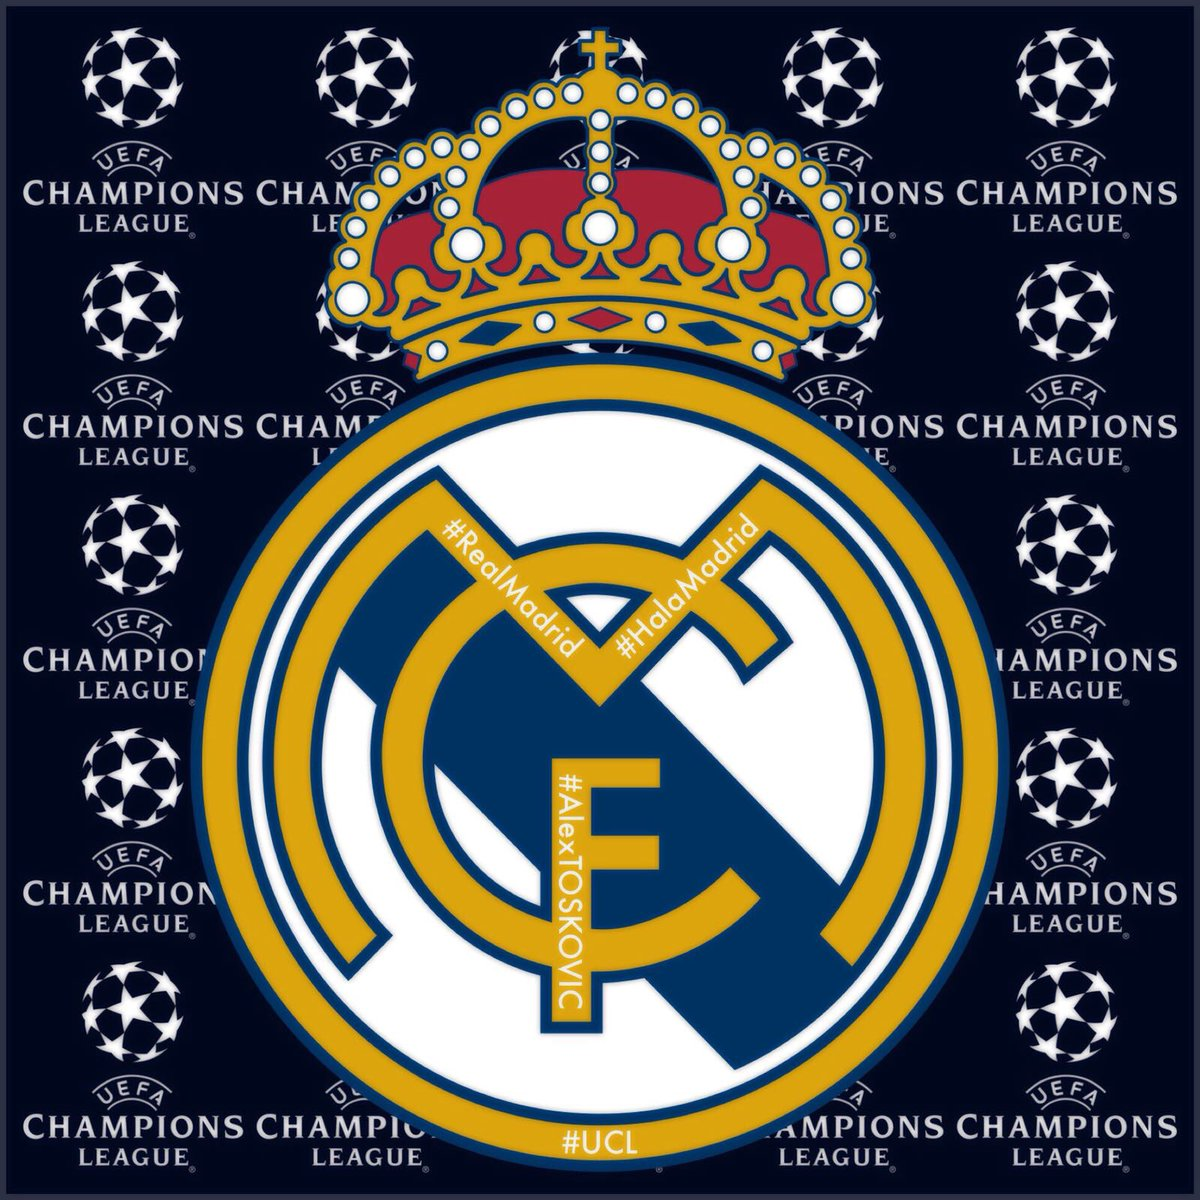 #GAMEDAY We are going to face @FCShakhtar tonight. It would be nice if we win tonight, it's not very interesting to watch all the mistakes on the field. #RealMadrid #VamosReal #HalaMadrid #UCL #AlexTOSKOVIC